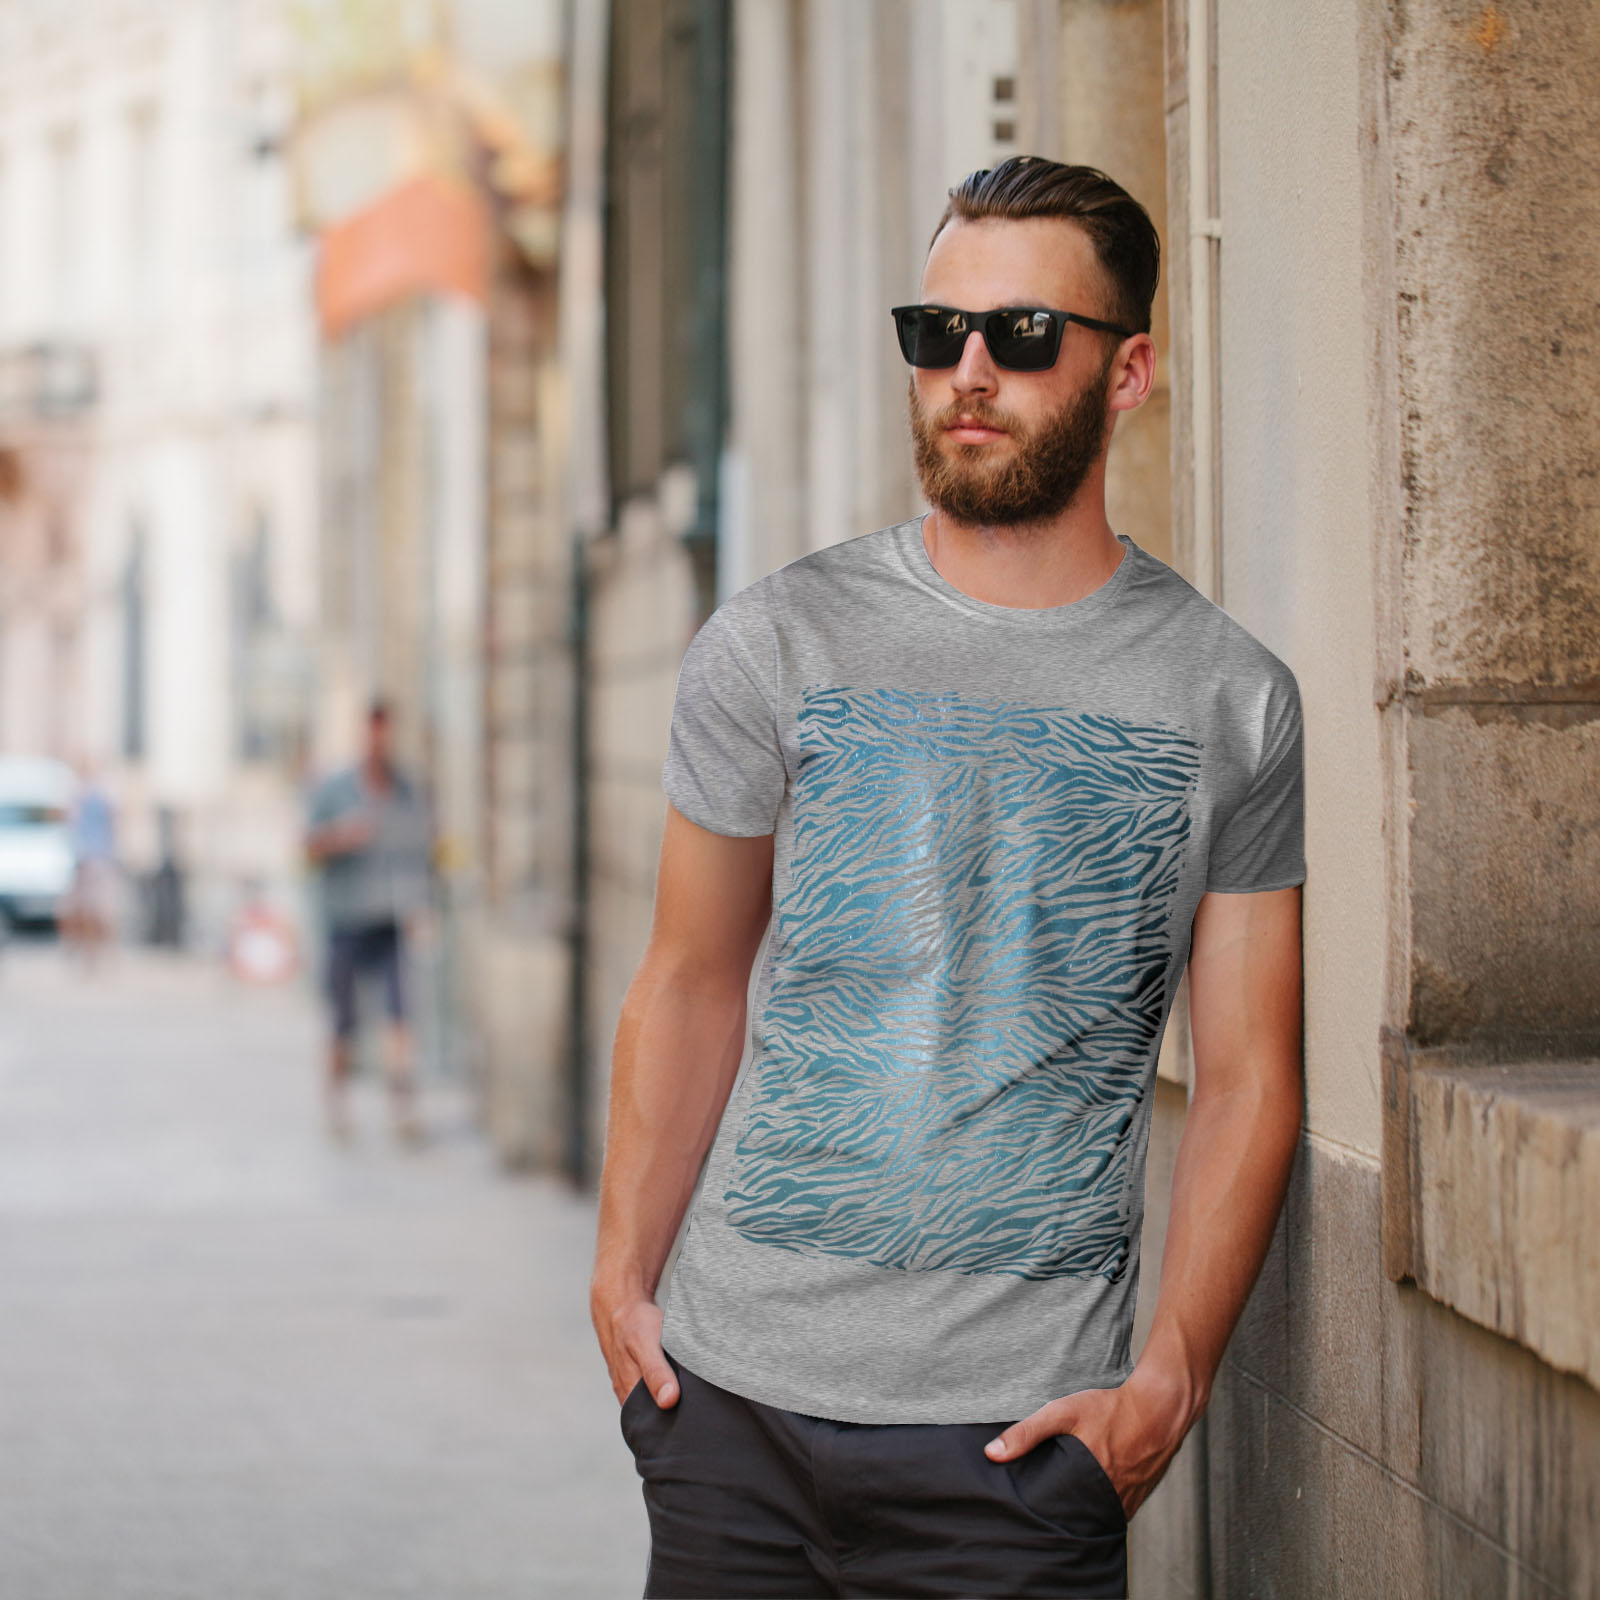 Wellcoda-Fashion-Pattern-Mens-T-shirt-Animal-Graphic-Design-Printed-Tee miniatuur 17